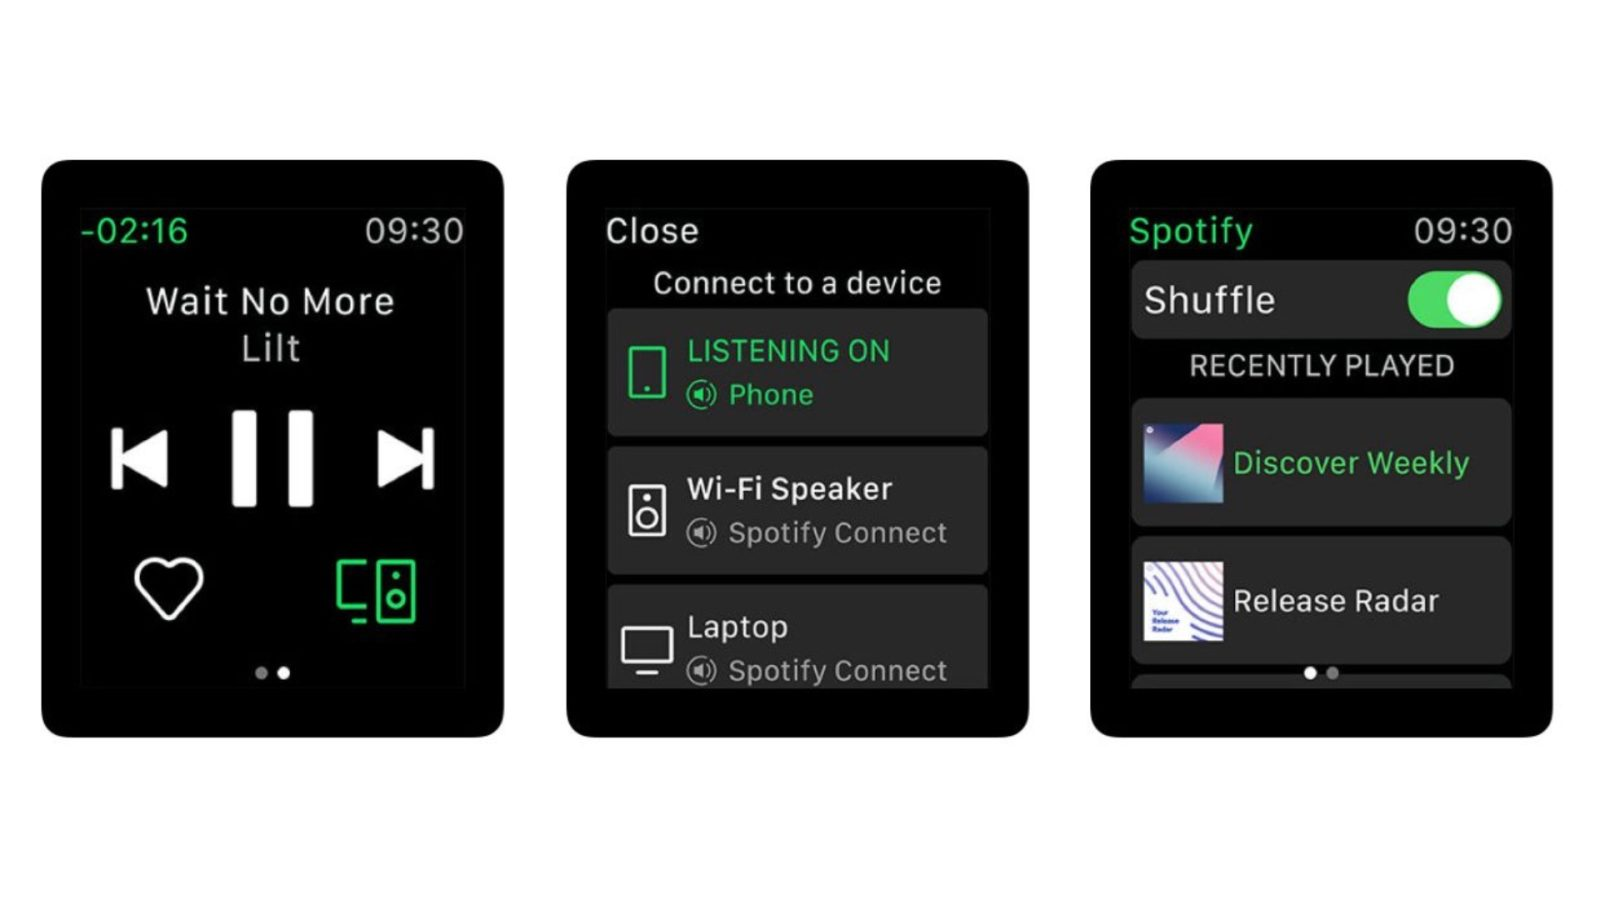 Version 8.4.85 of the Spotify app now supports Apple Watch Series 4